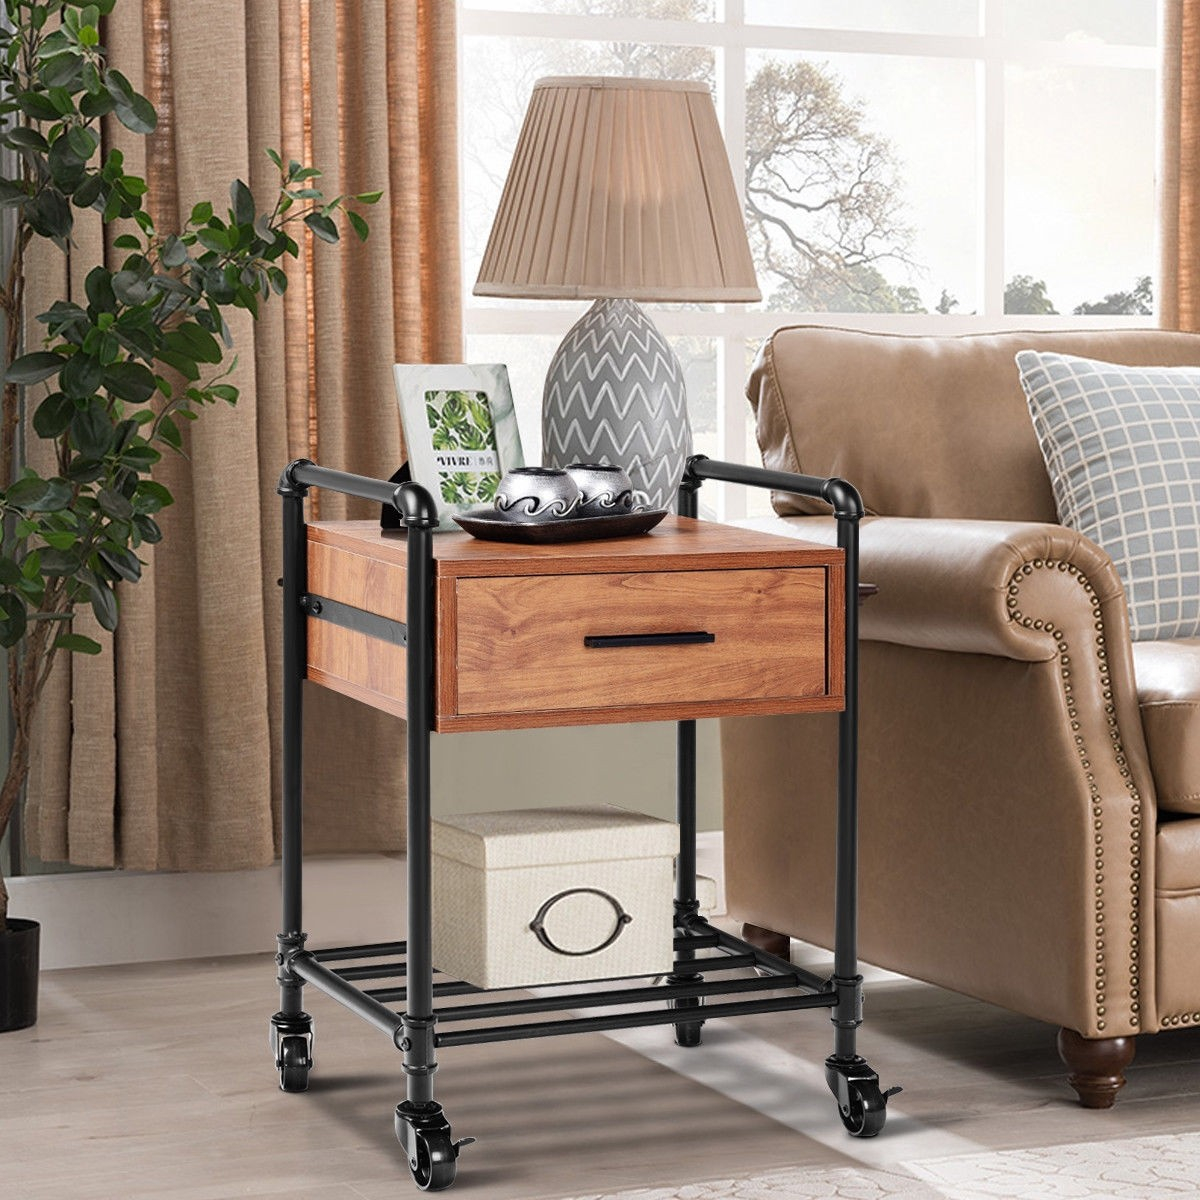 Storage Table On Wheels Details About 2 Tier End Coffee Living Room Table With Drawer And Wheels Storage Decorations